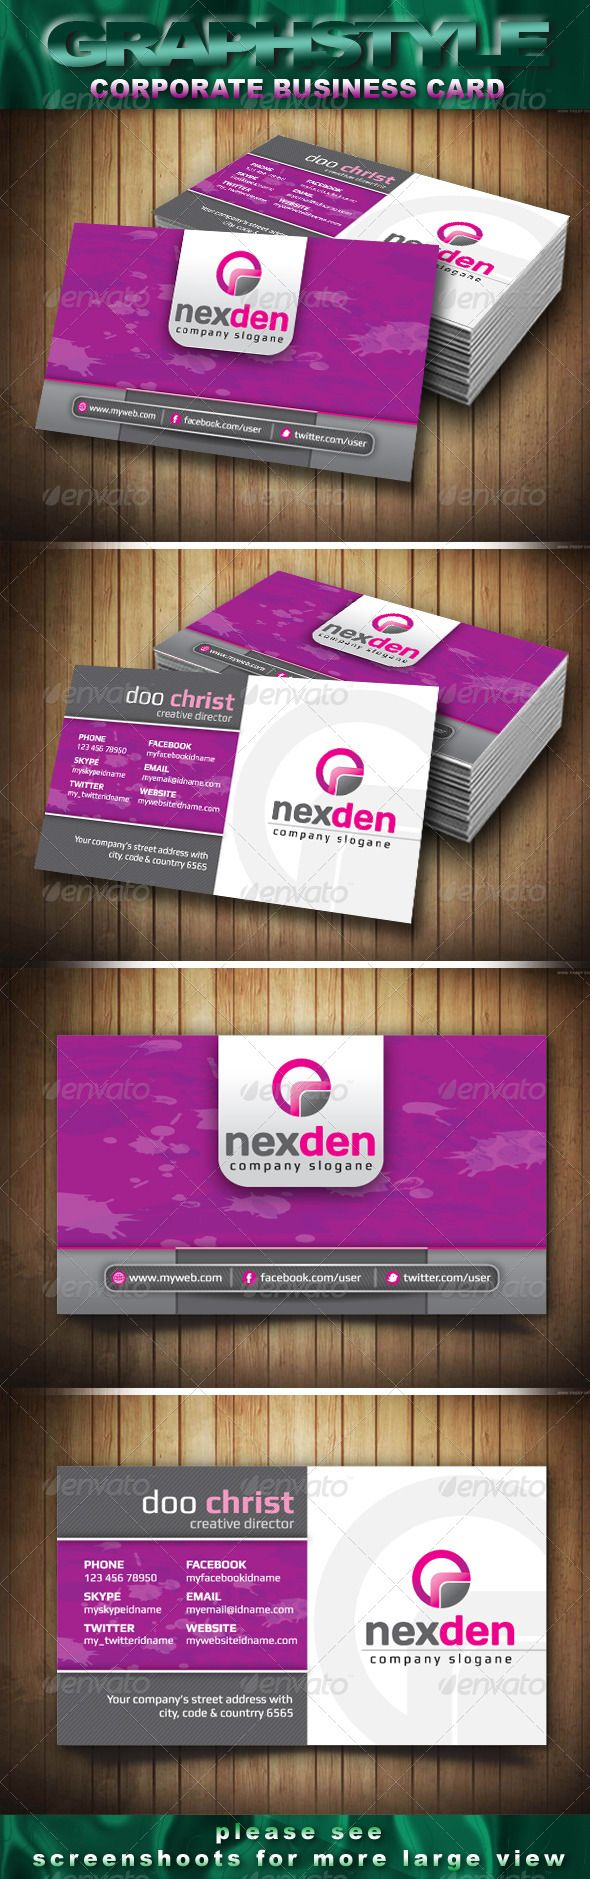 15 best buisness cards images on pinterest business card design buy nexden corporate business card by graphstyle on graphicriver nexden corporate business card print dimension with bleed trim mark well layered reheart Image collections